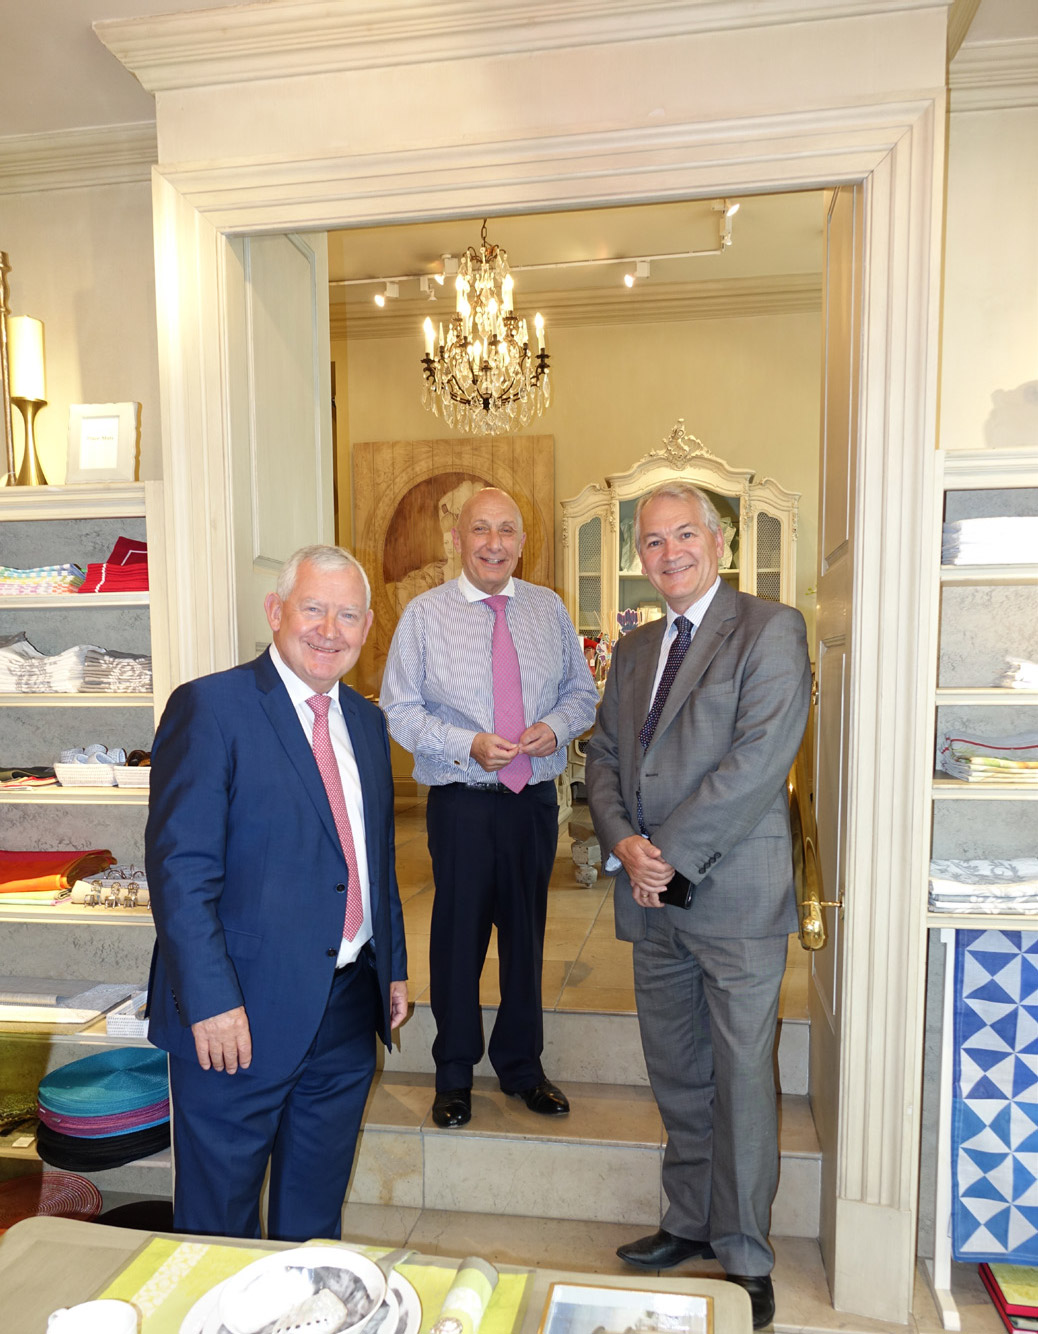 Former bira CEO Alan Hawkins, William Woods of Woods of Harrogate and current bira CEO Andrew Goodacre